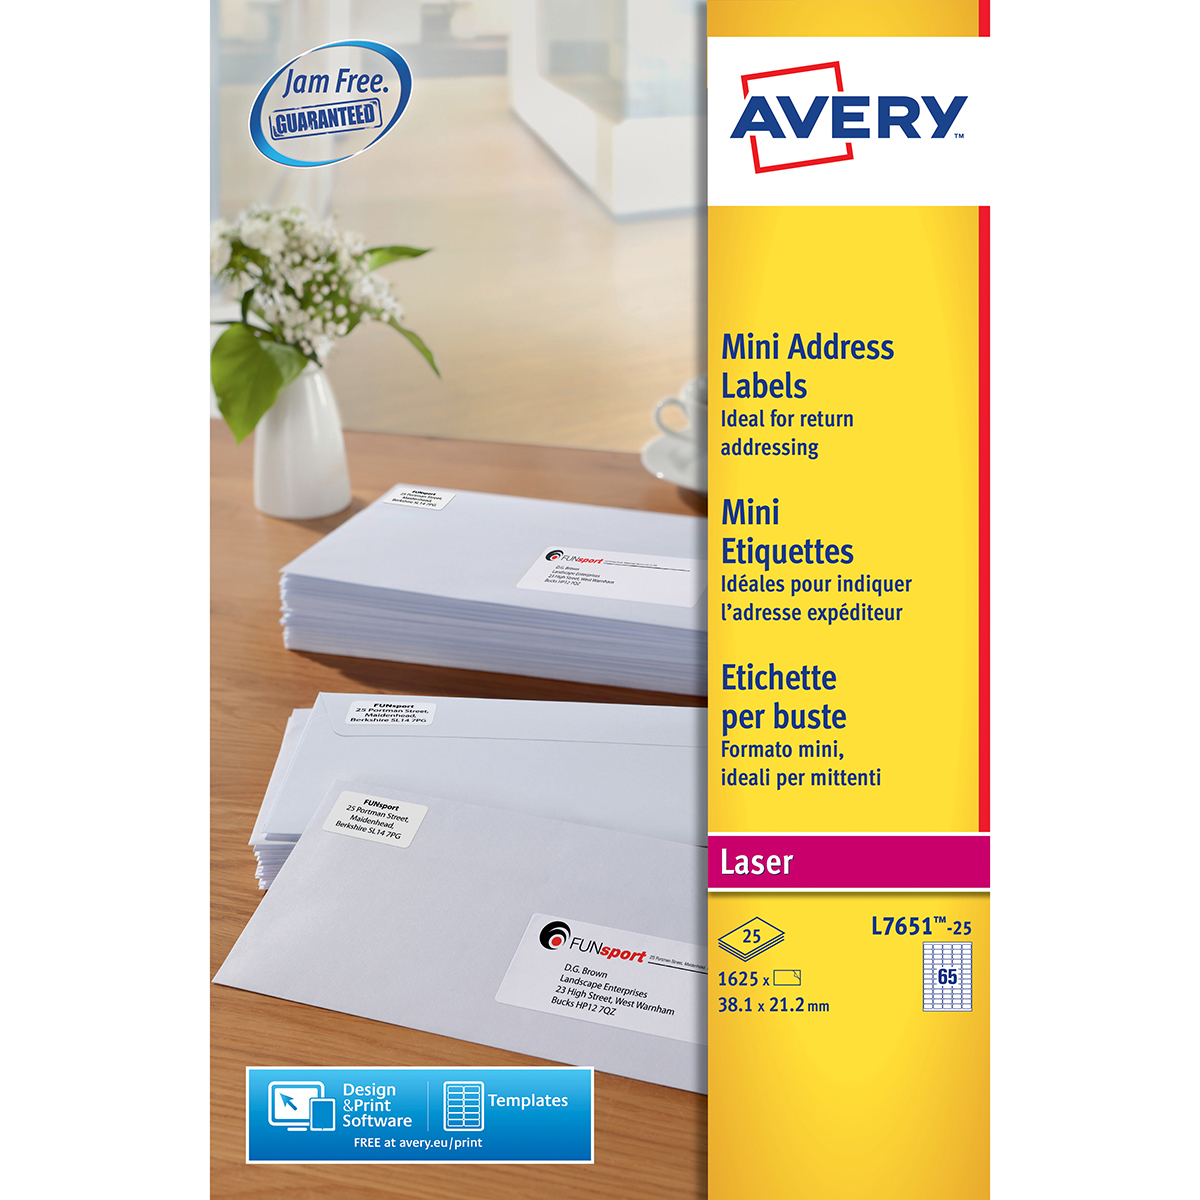 Avery L7651-25 Mini Address Labels 25 sheets - 65 Labels per Sheet